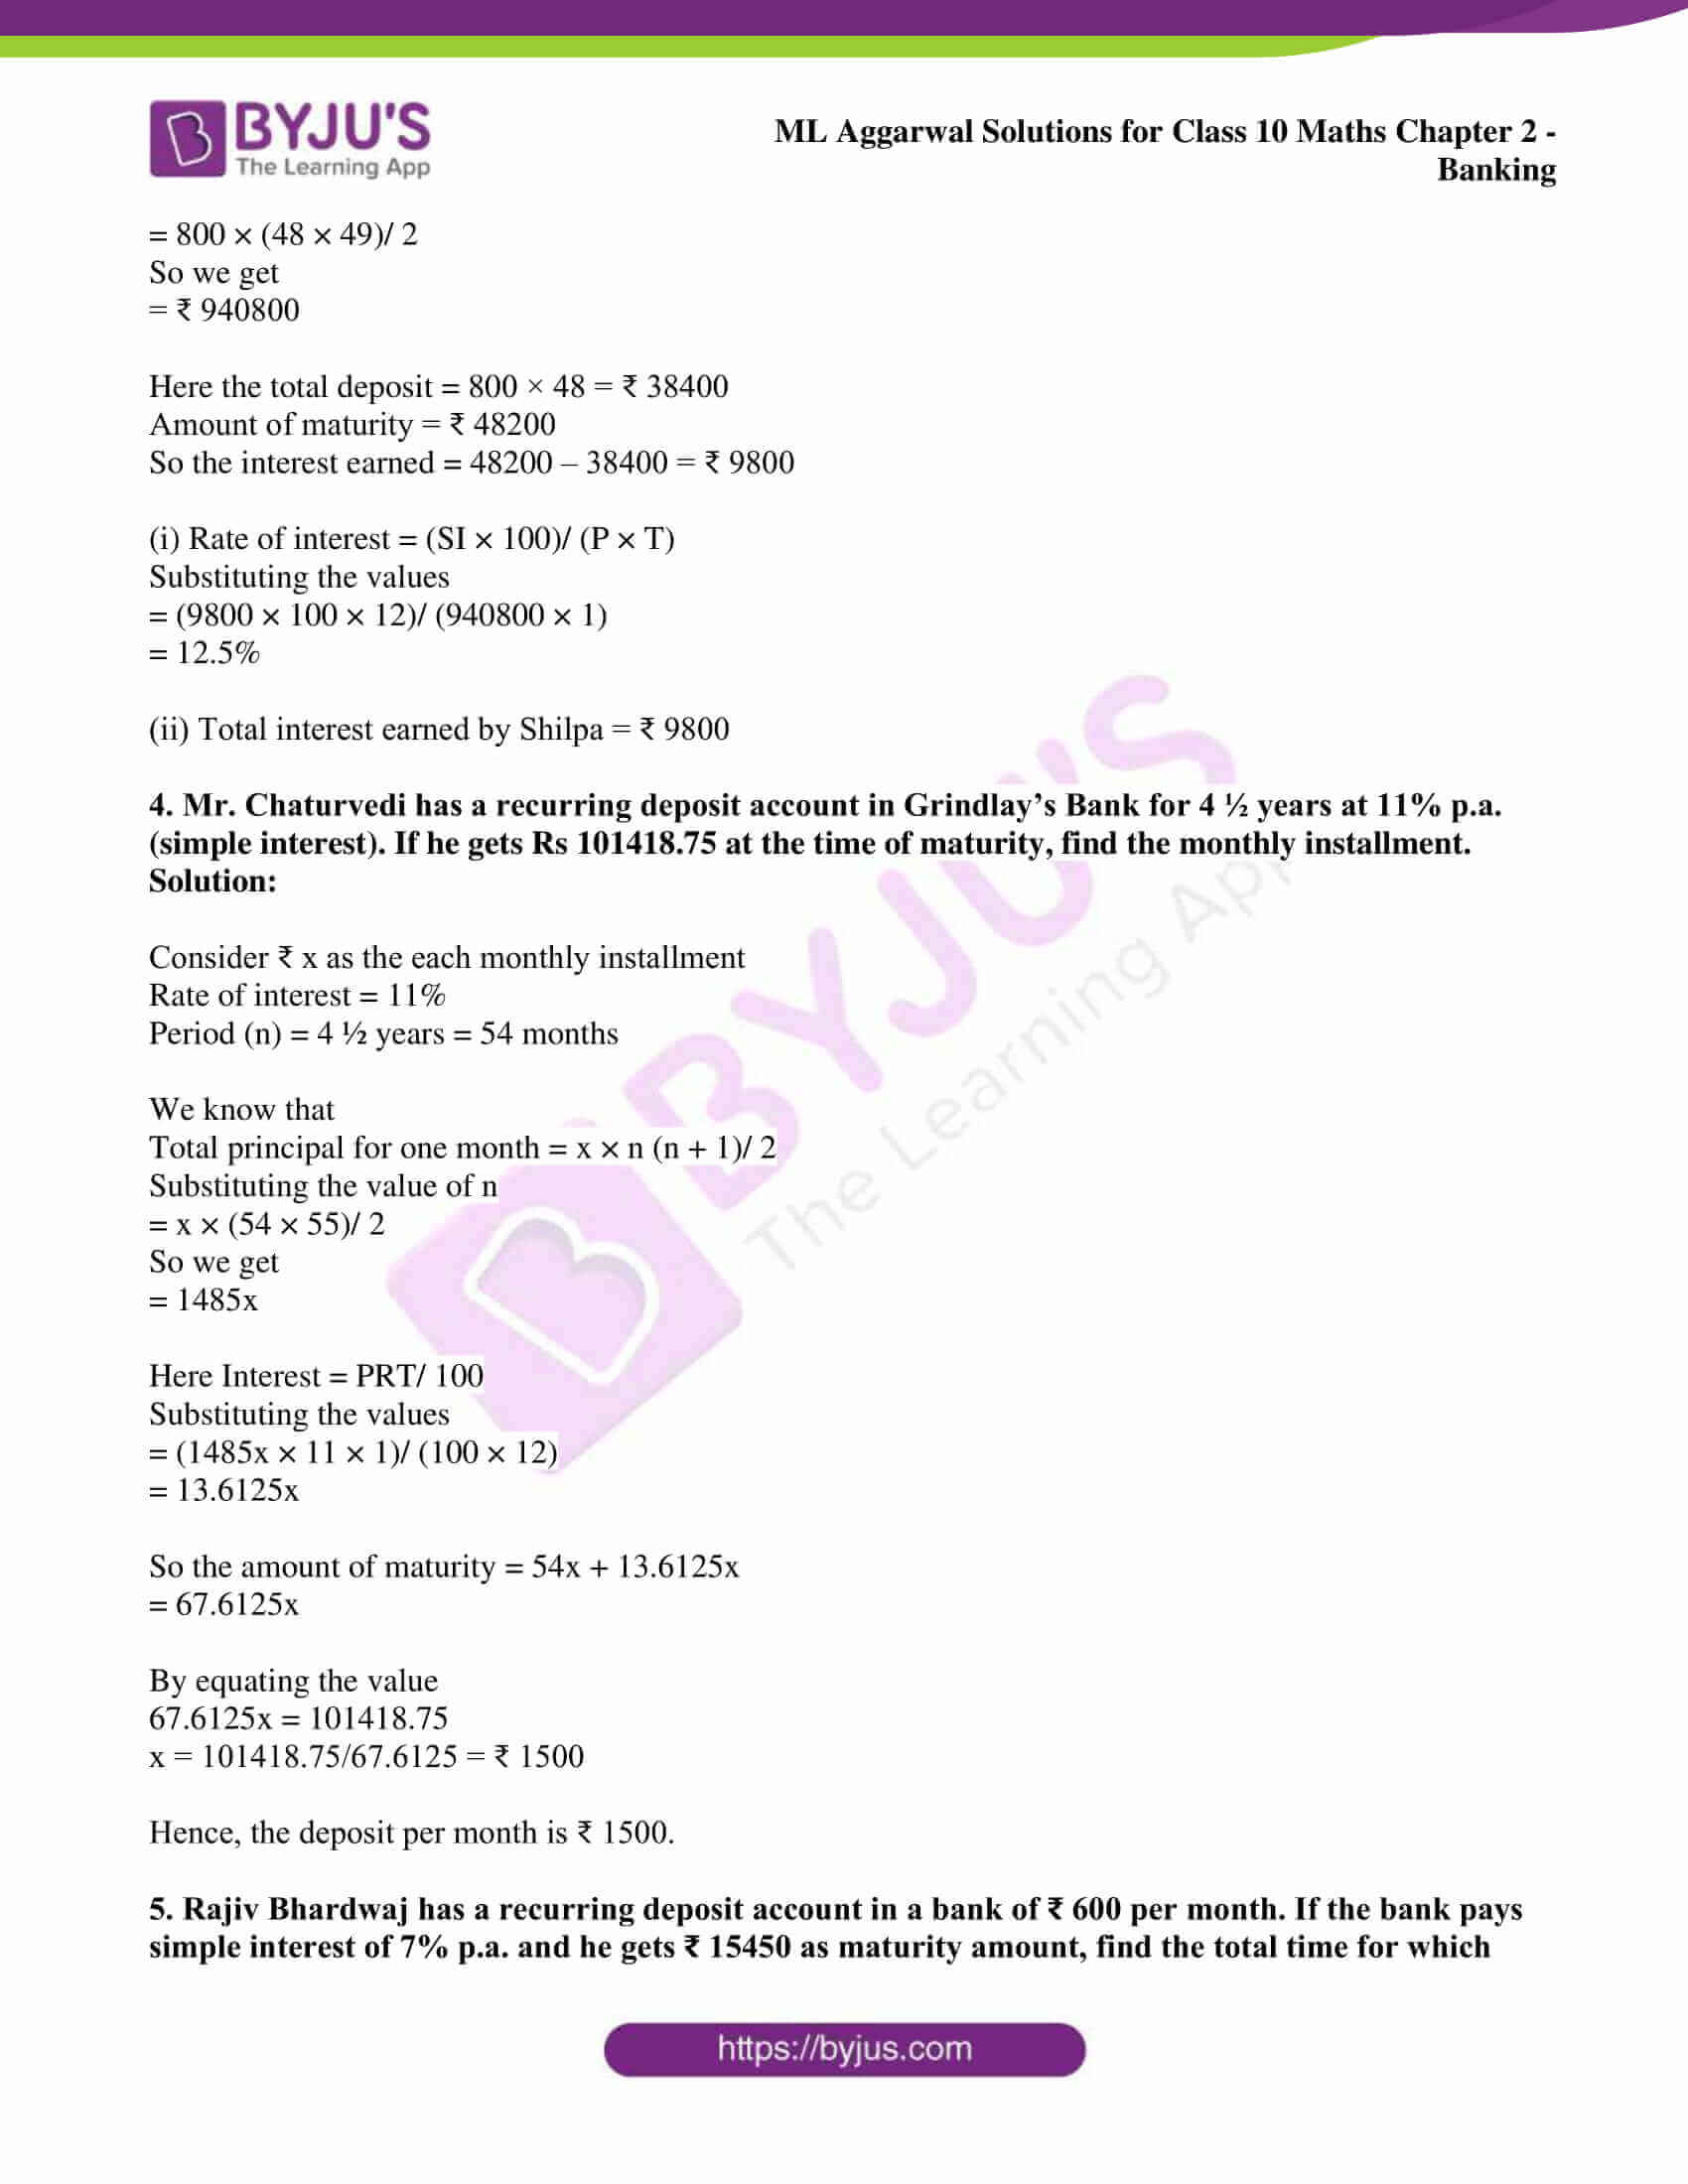 ml aggarwal solutions class 10 maths chapter 2 10